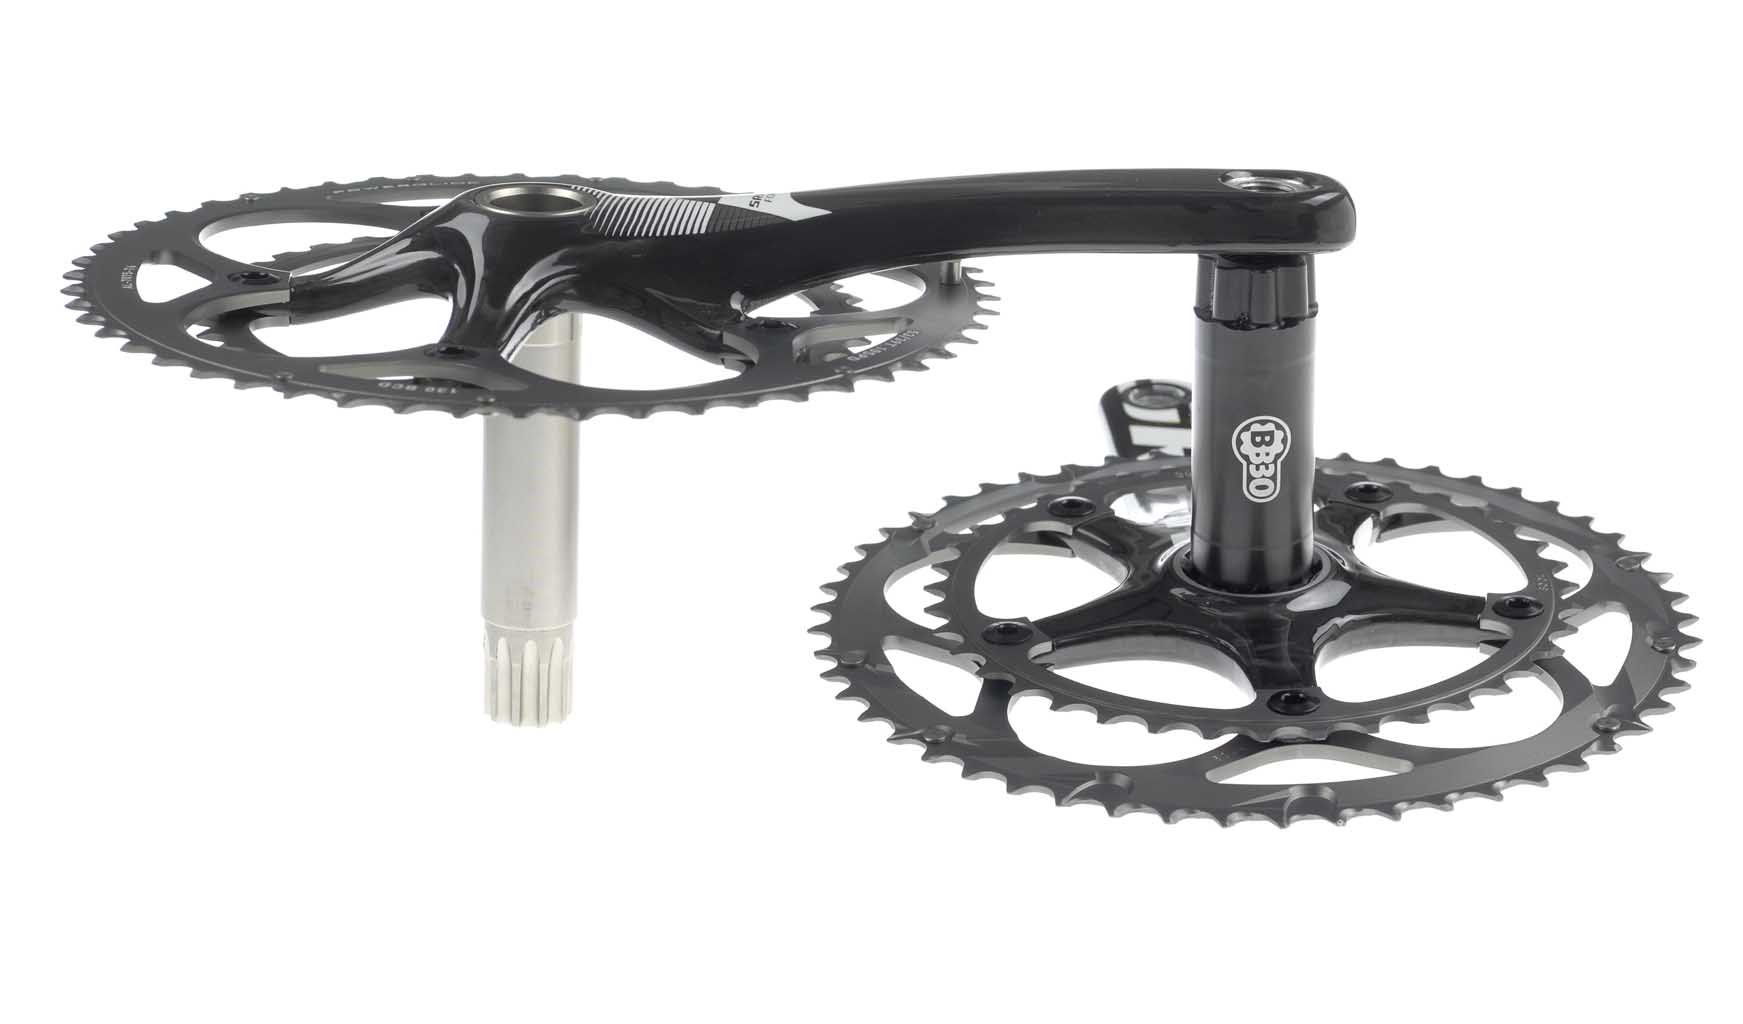 SRAM Force 2010 Crankset